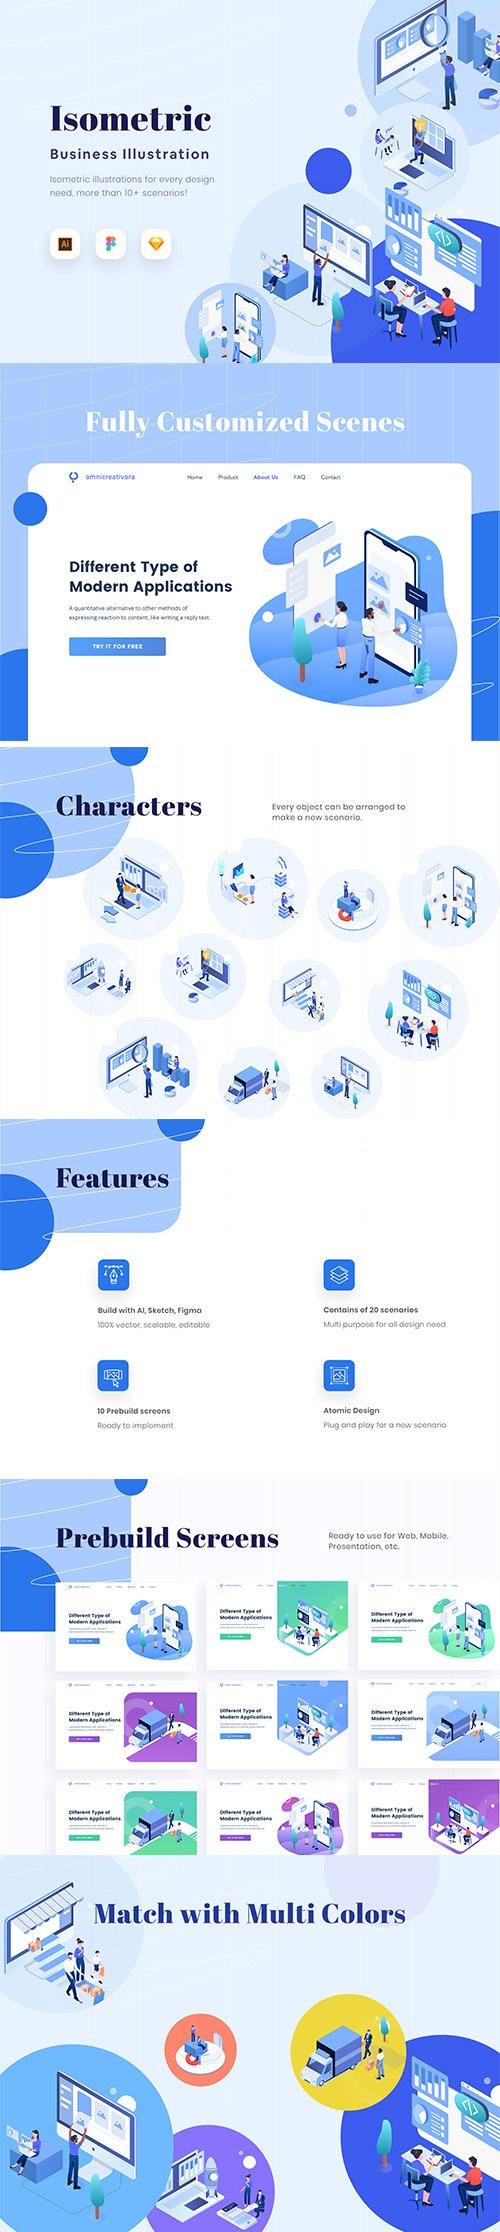 Isometric Business Vector Illustration